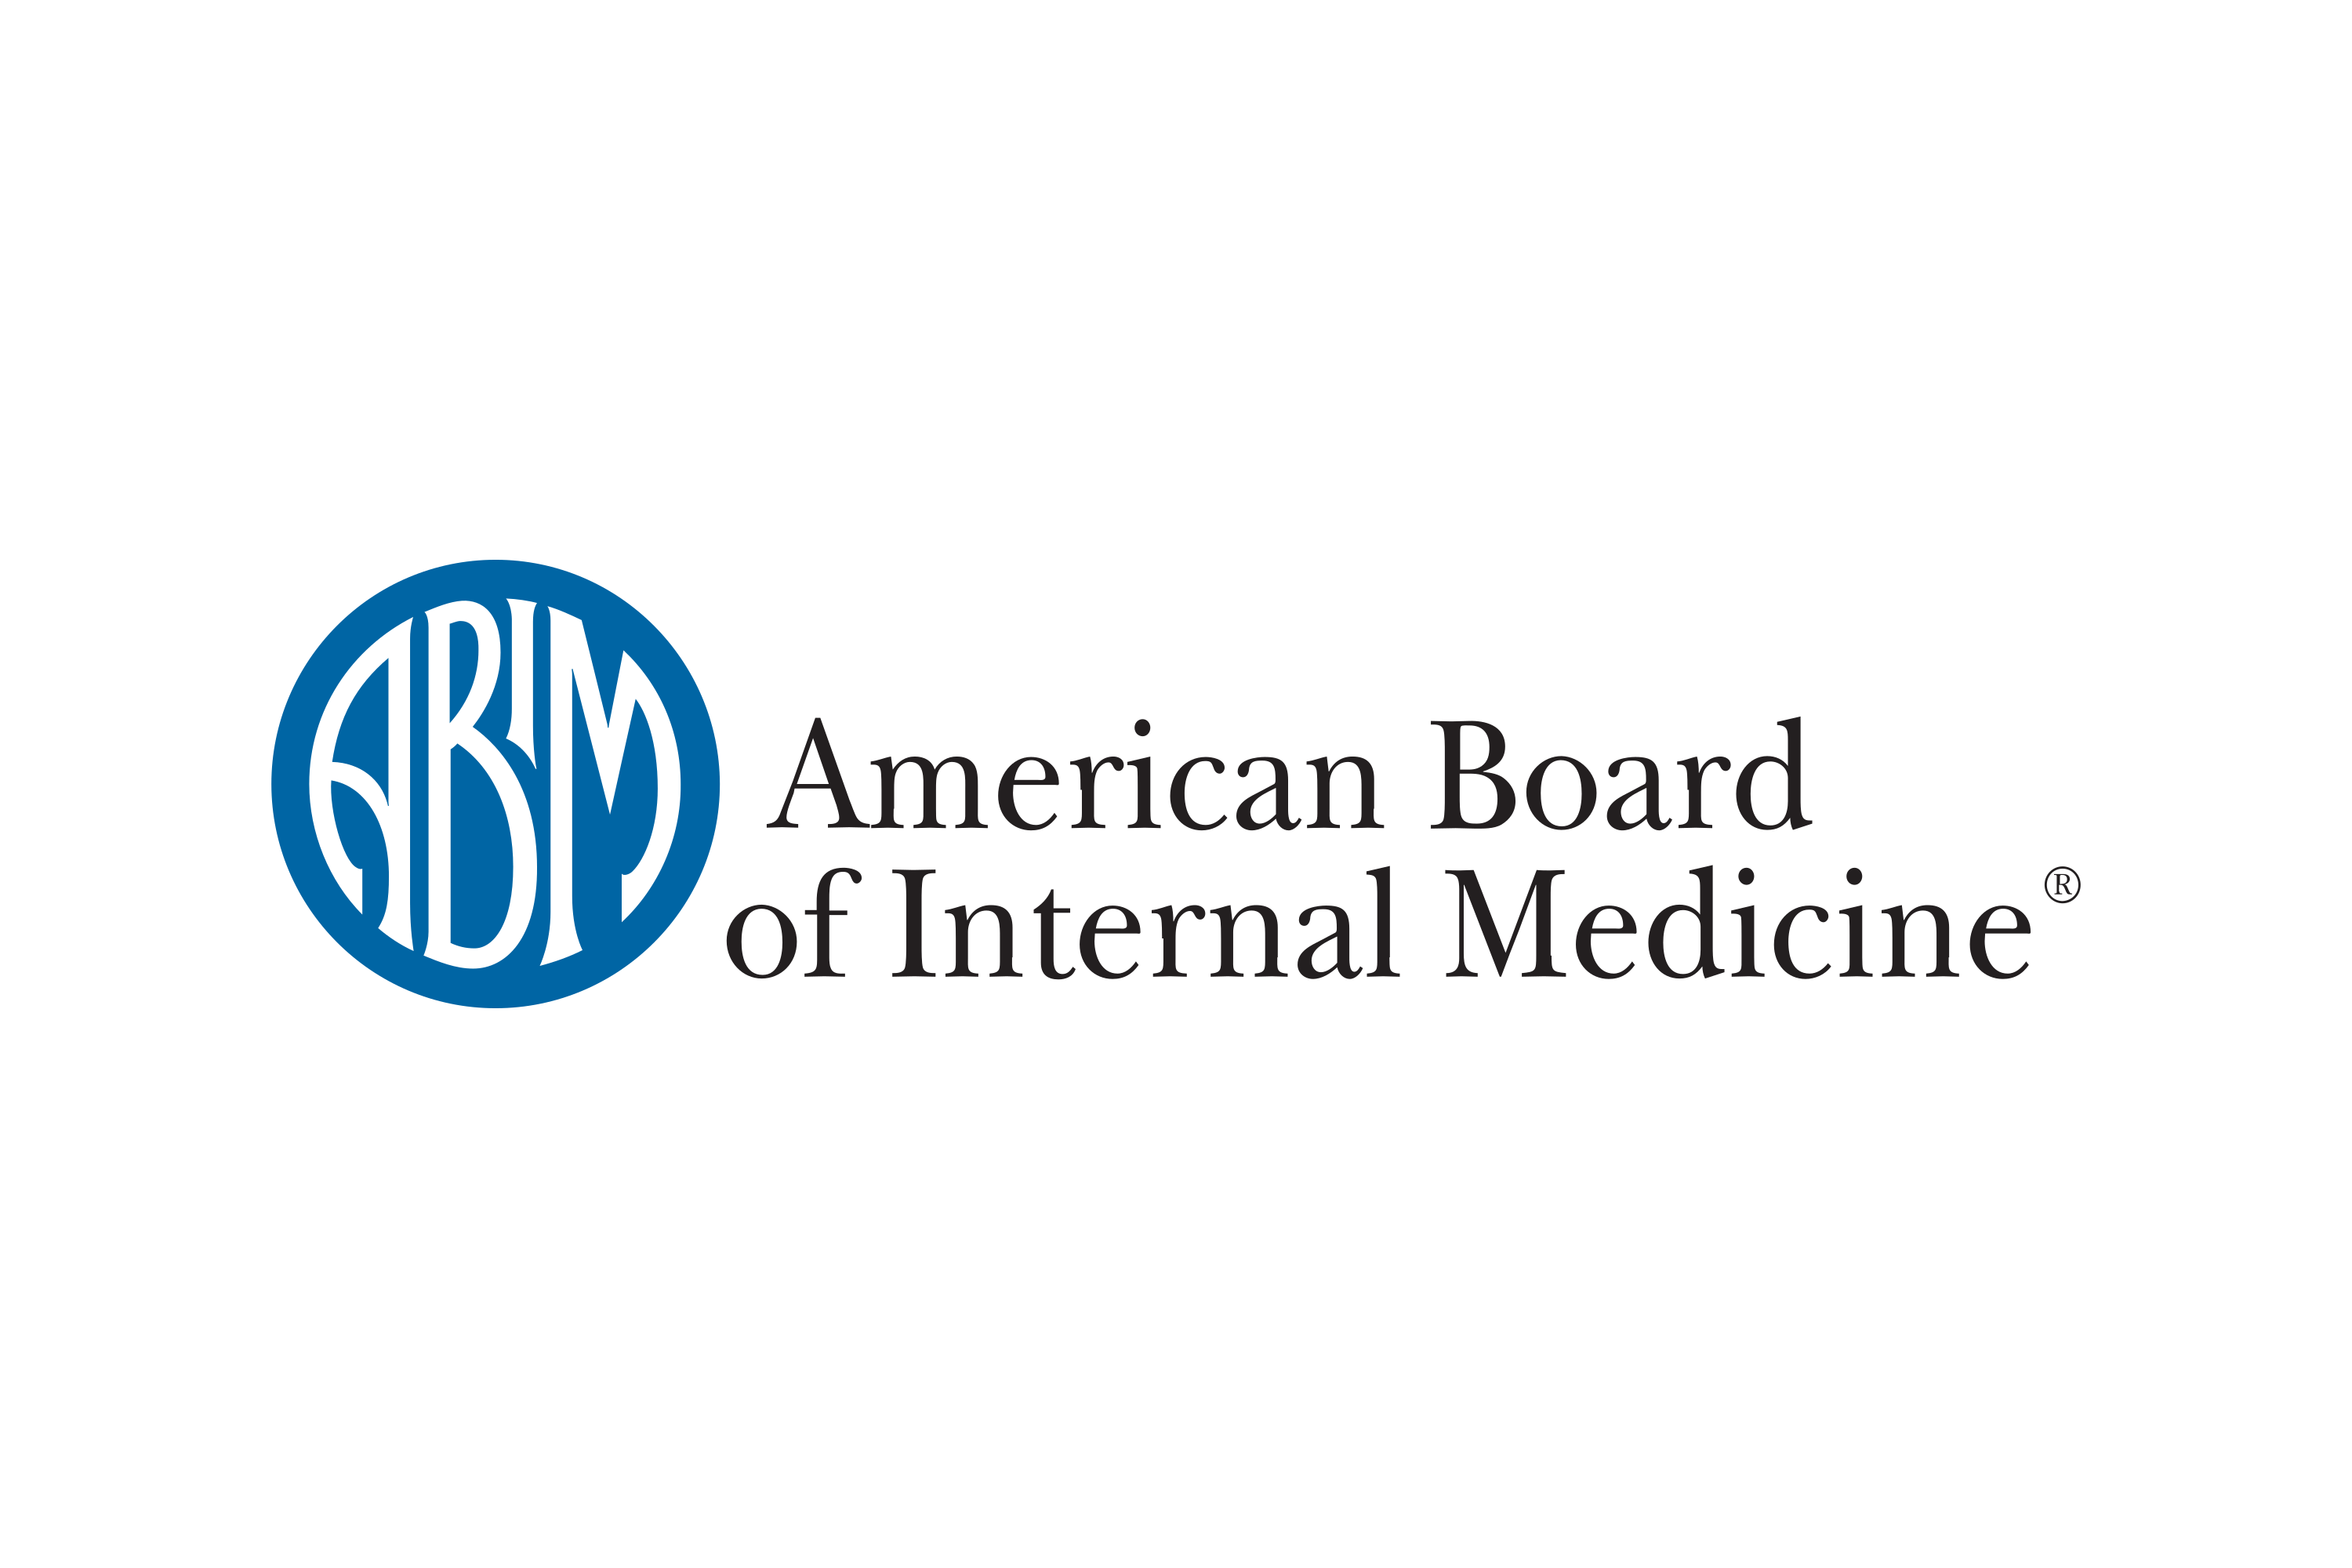 American Board of Internal Medicine logo, Get Us PPE partner